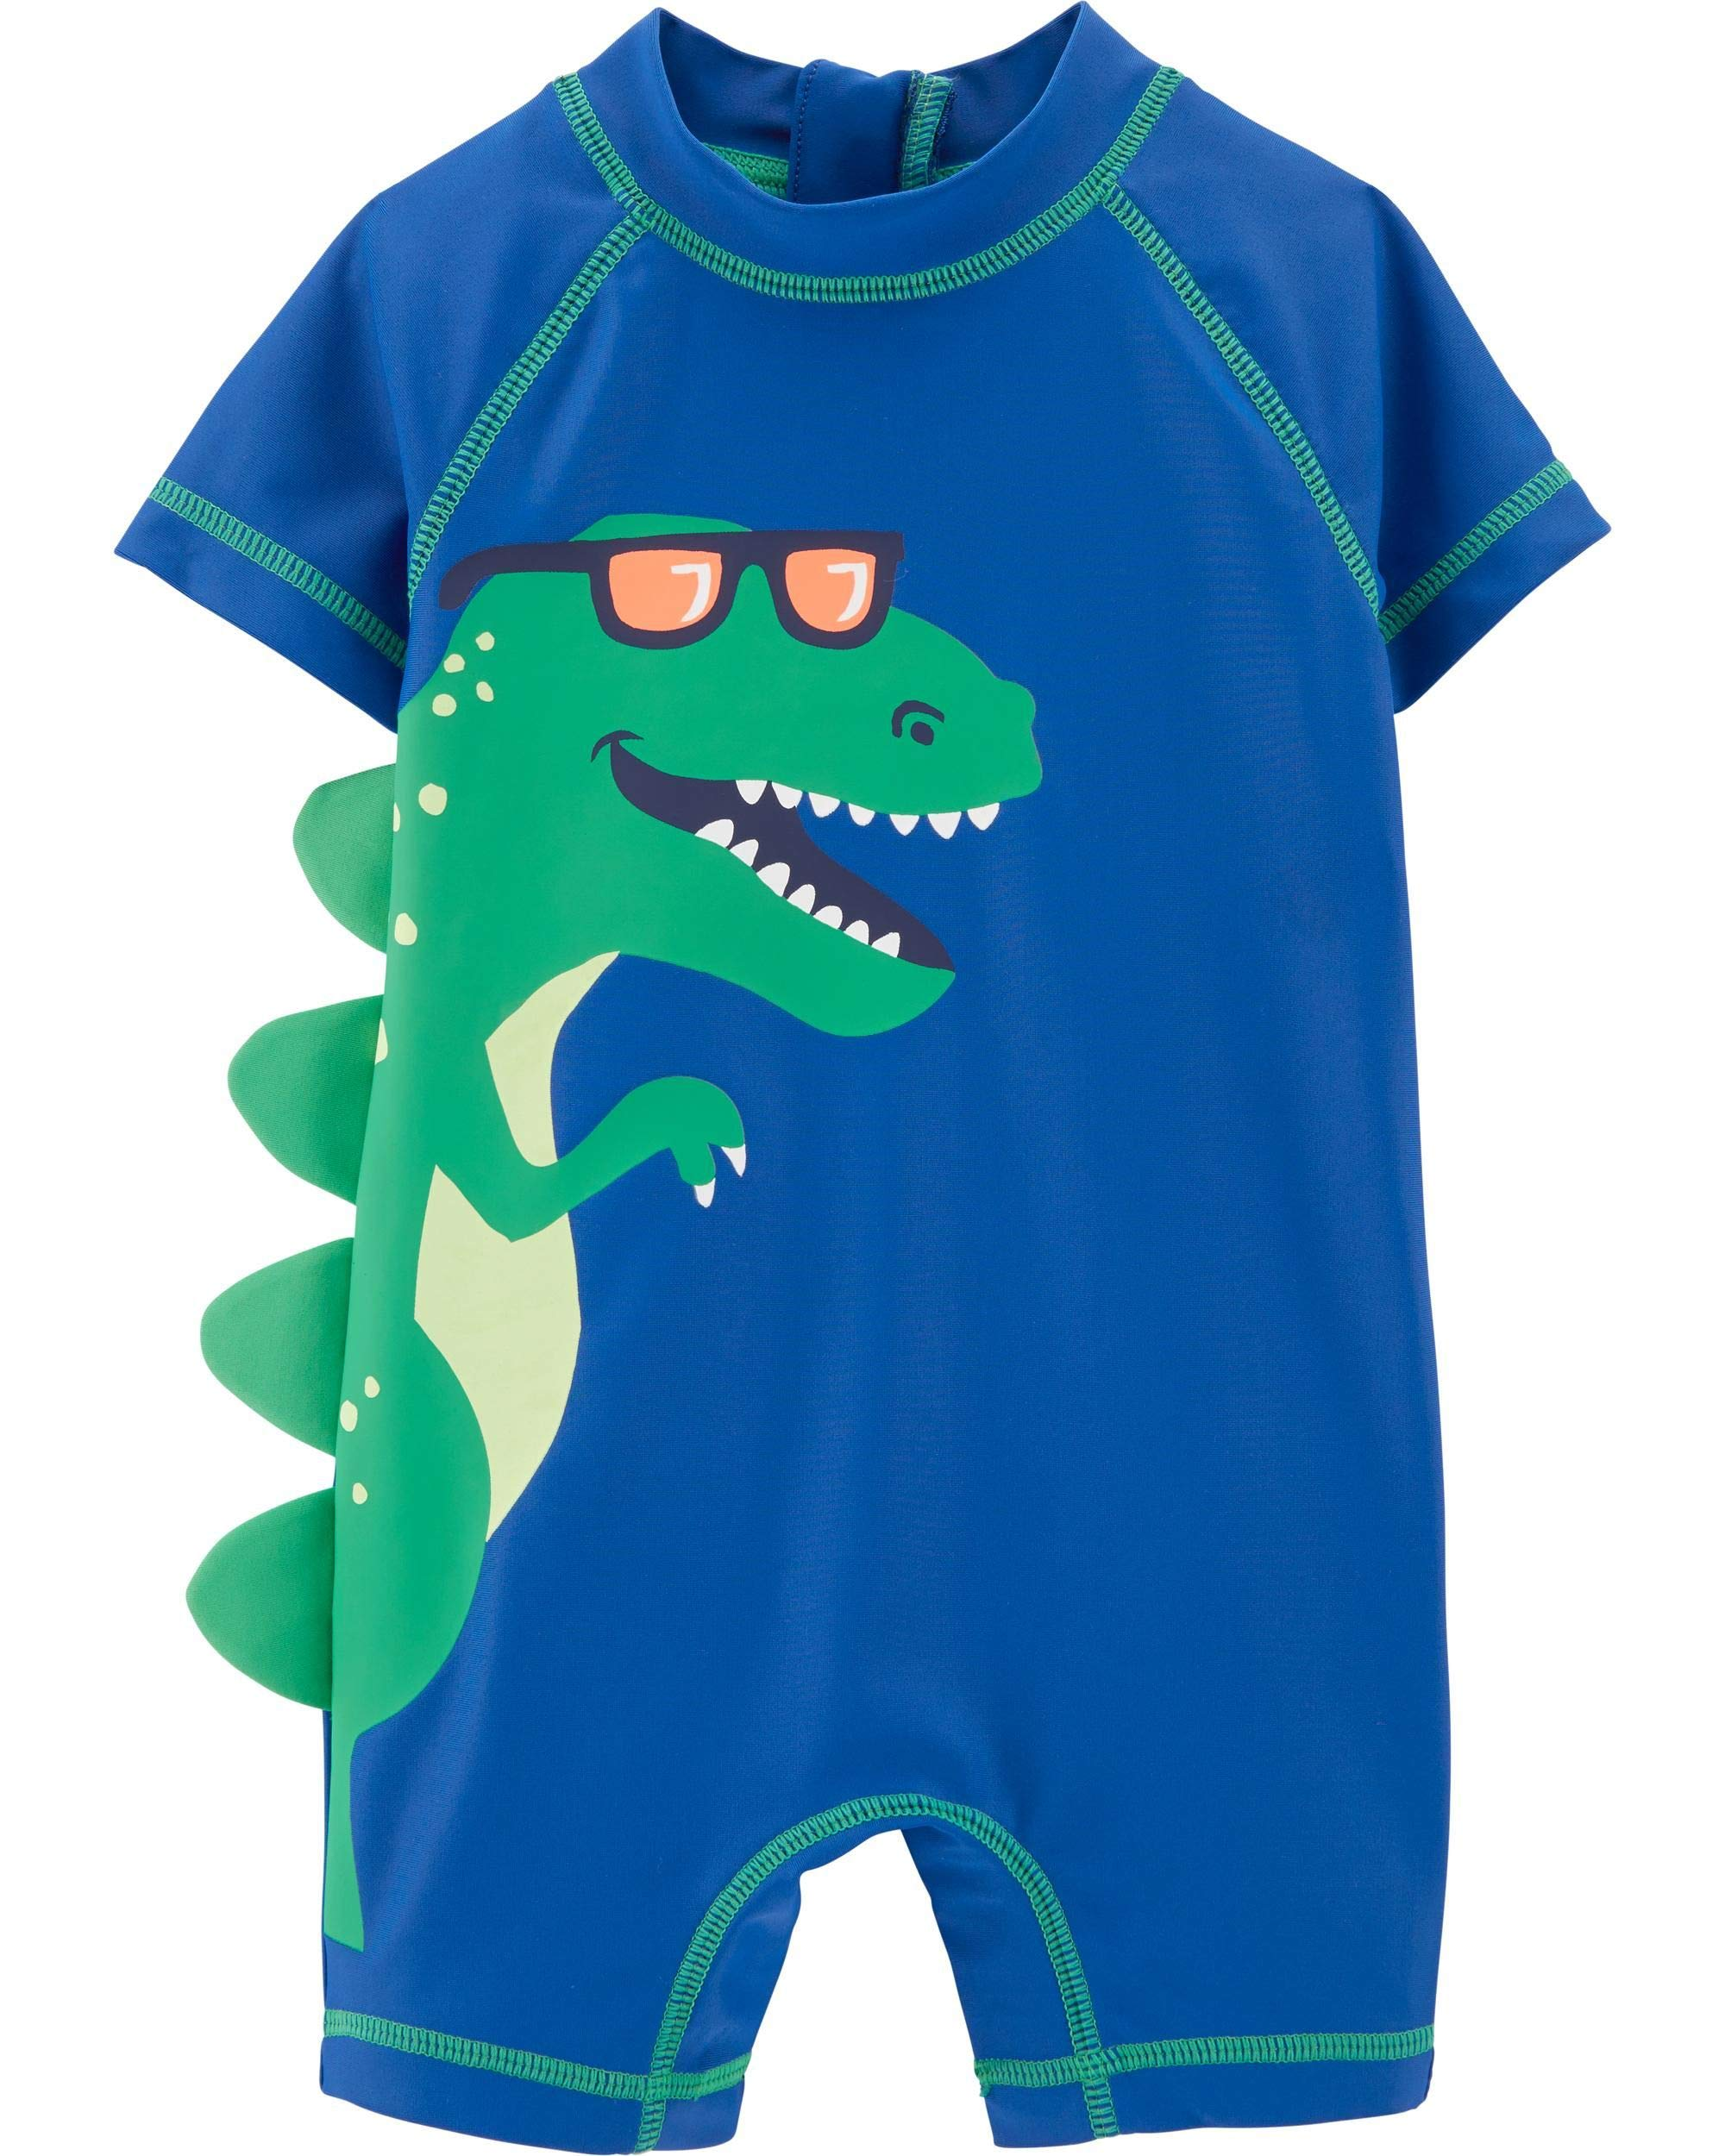 Carter's 1 Piece Baby Boy's Dinosaur Rashguard Swim Bathing Suit 50+ UPF (3 Months) Blue and Green by Carter's